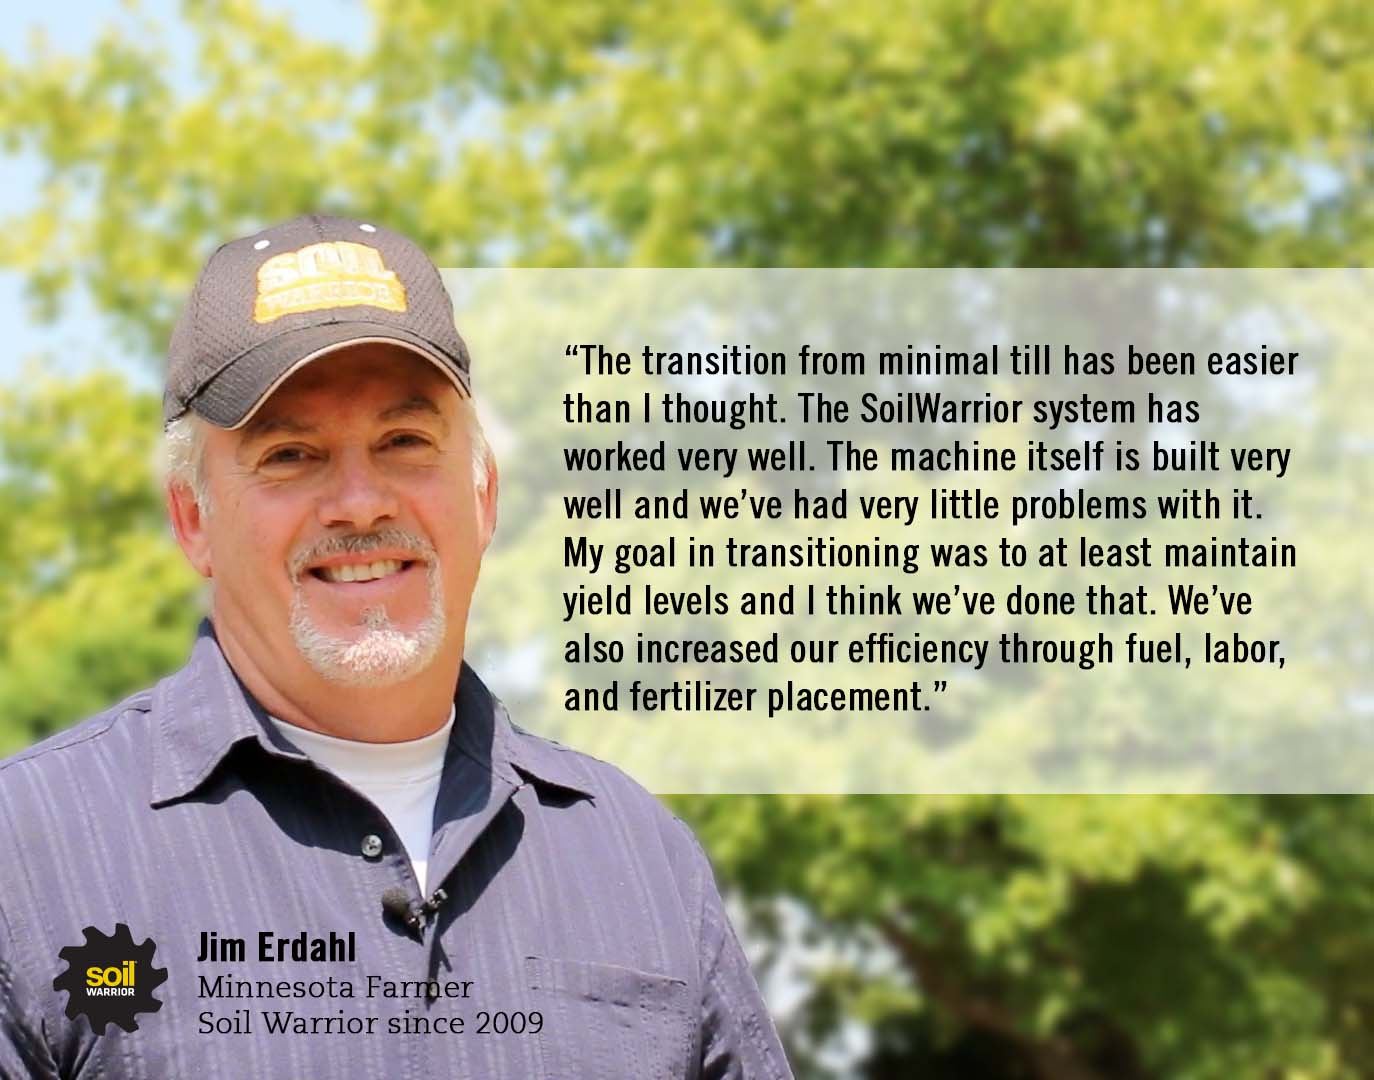 My goal in transitioning was to at least maintain yield levels ... we've also increased our efficiency through fuel, labor, and fertilizer placement. - Jim Erdahl